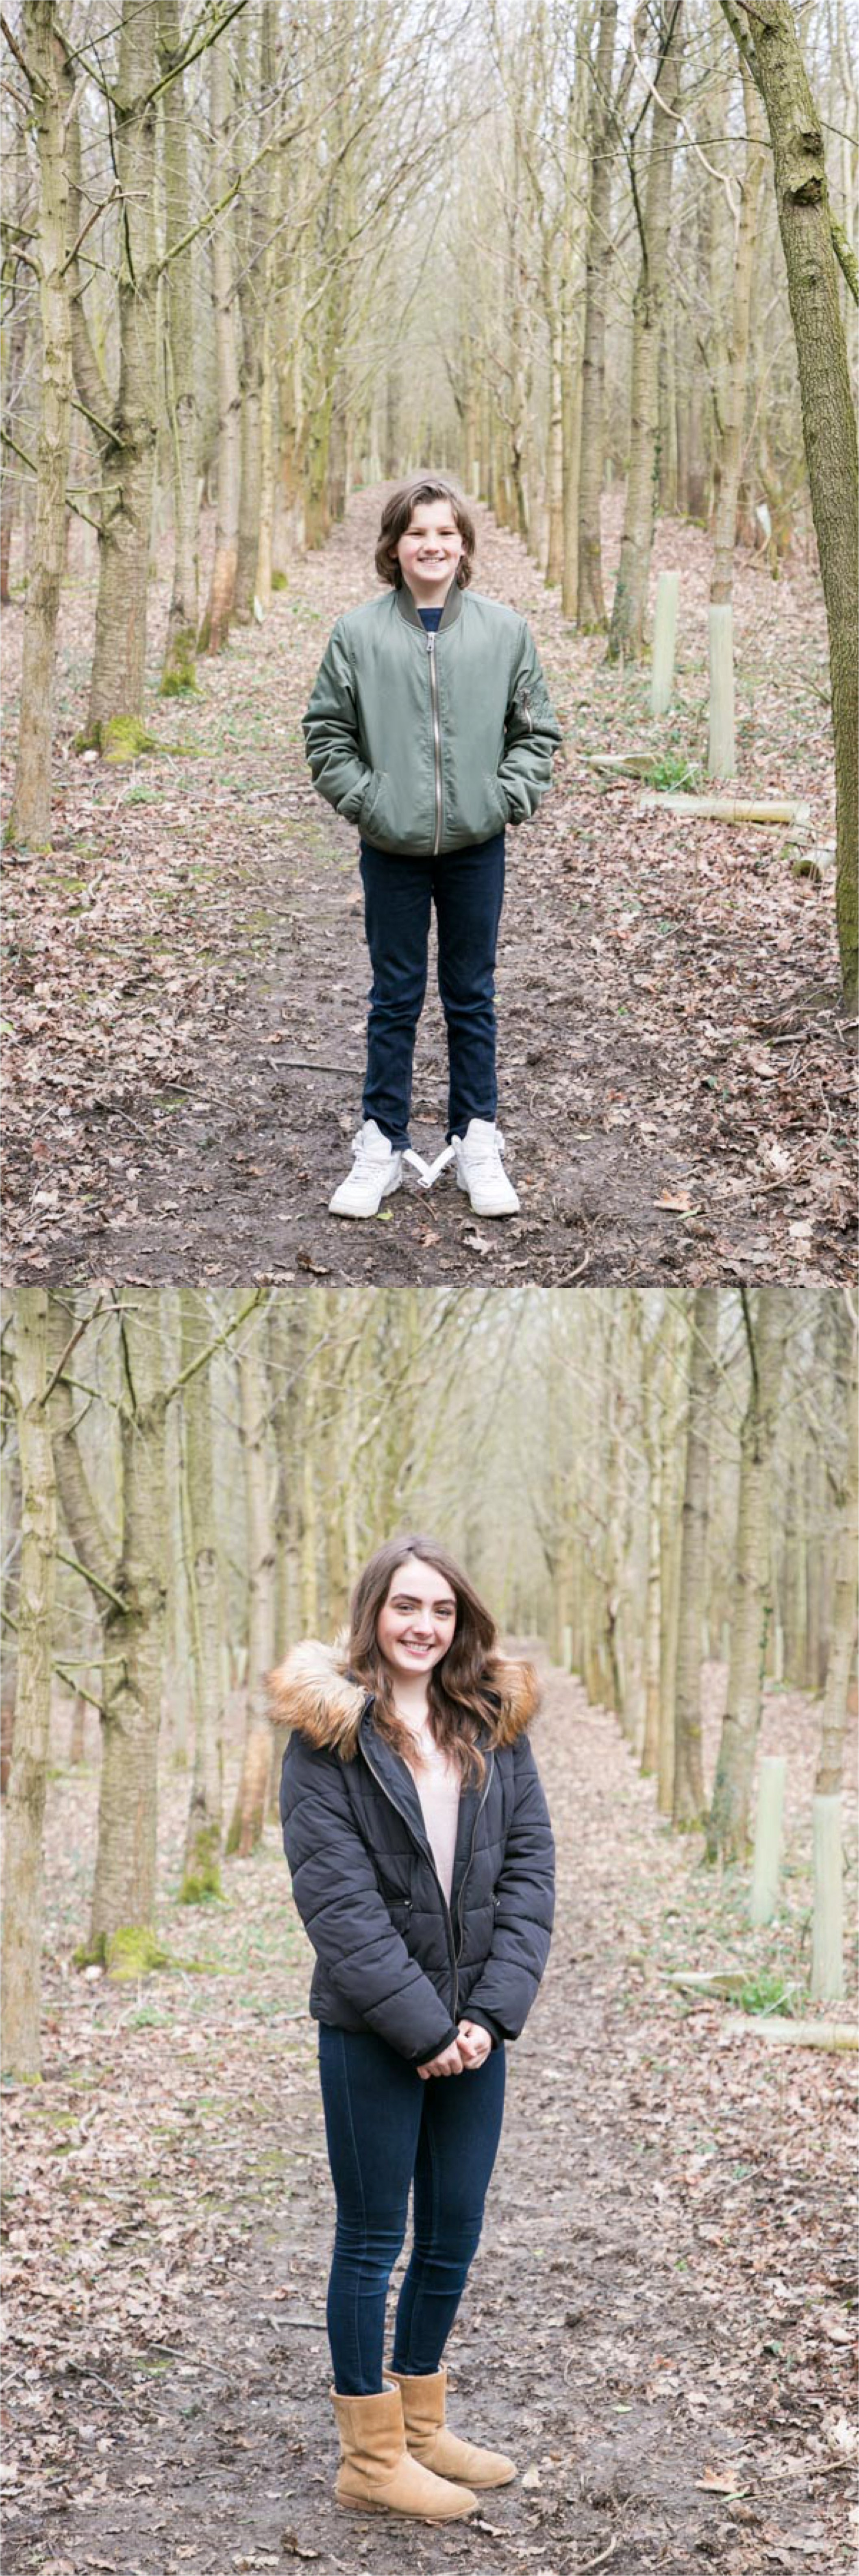 family and teen photography in suffolk woodland